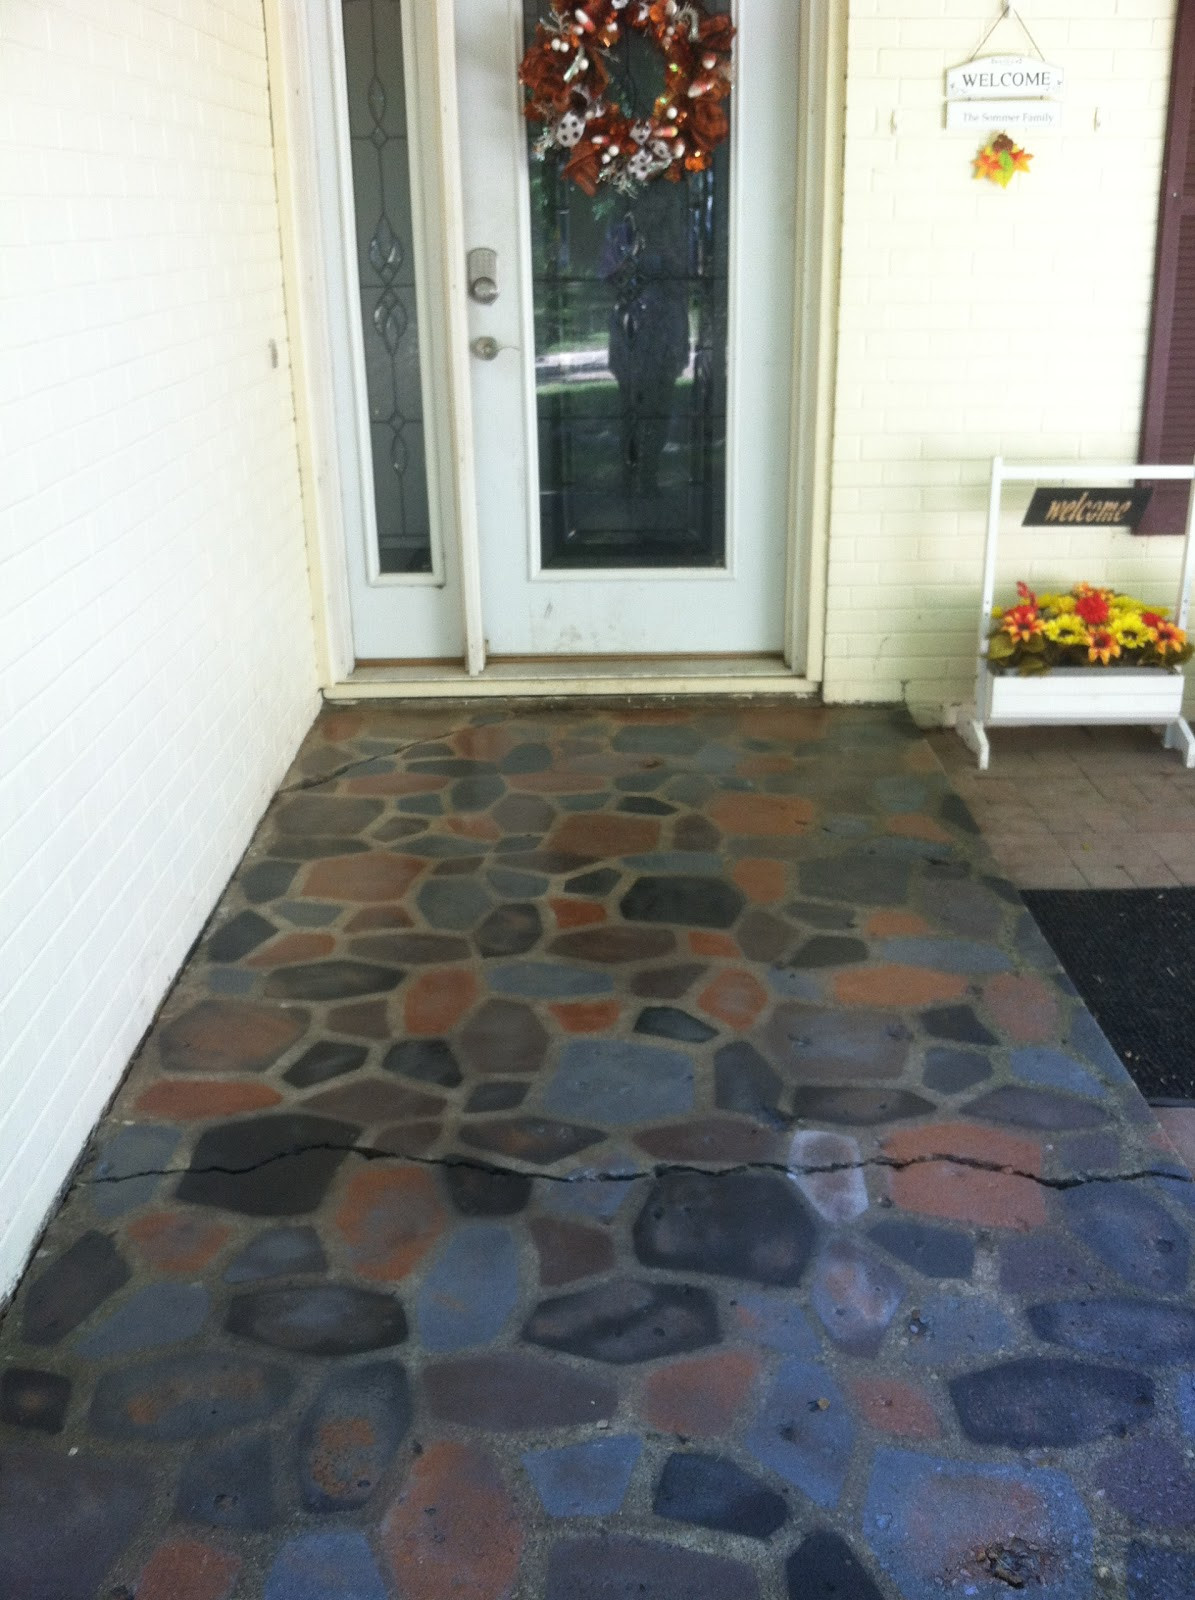 Best ideas about Painted Concrete Patio . Save or Pin The Smart Momma Spray Painted Faux Stones on Concrete Patio Now.